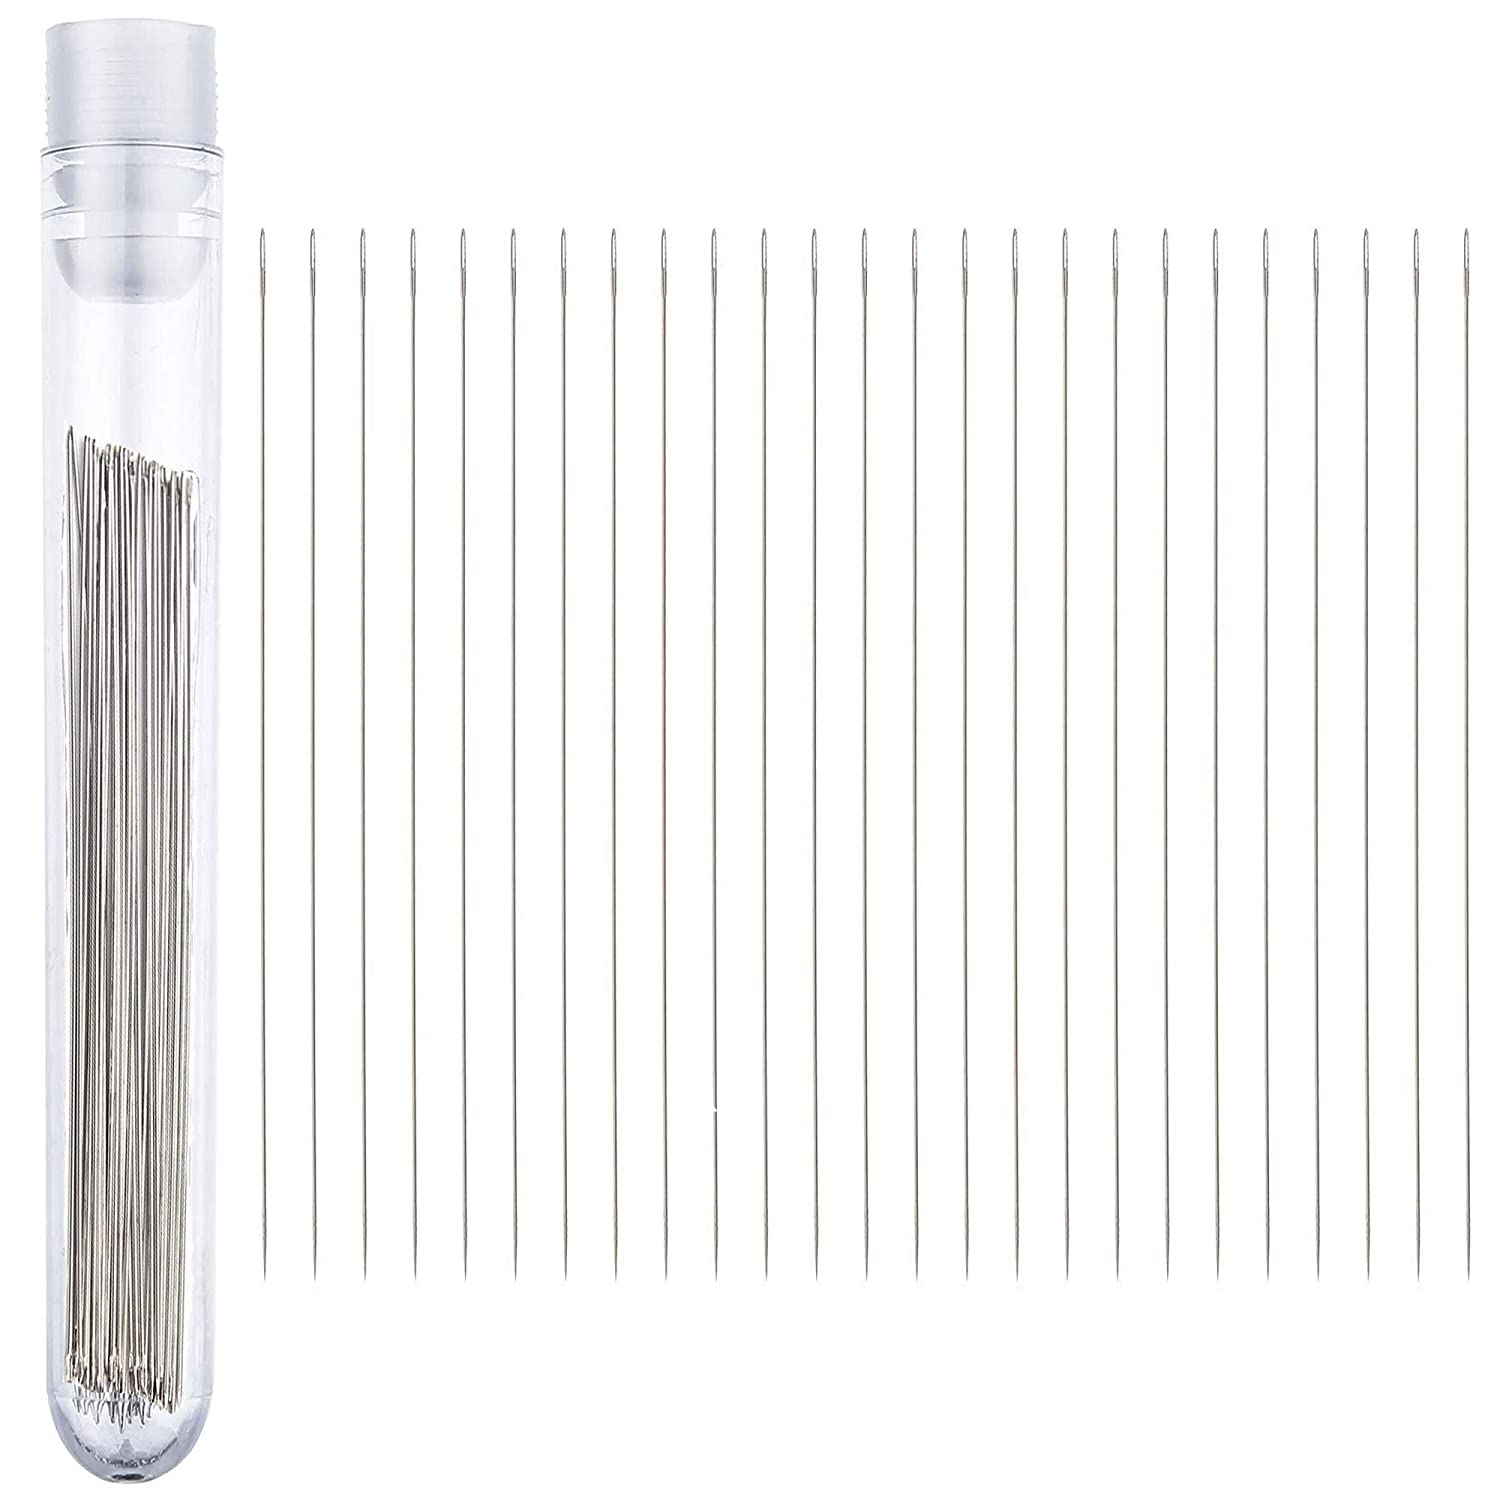 with Needle Storage Tube ​ Beading Needles Size 11 25pcs